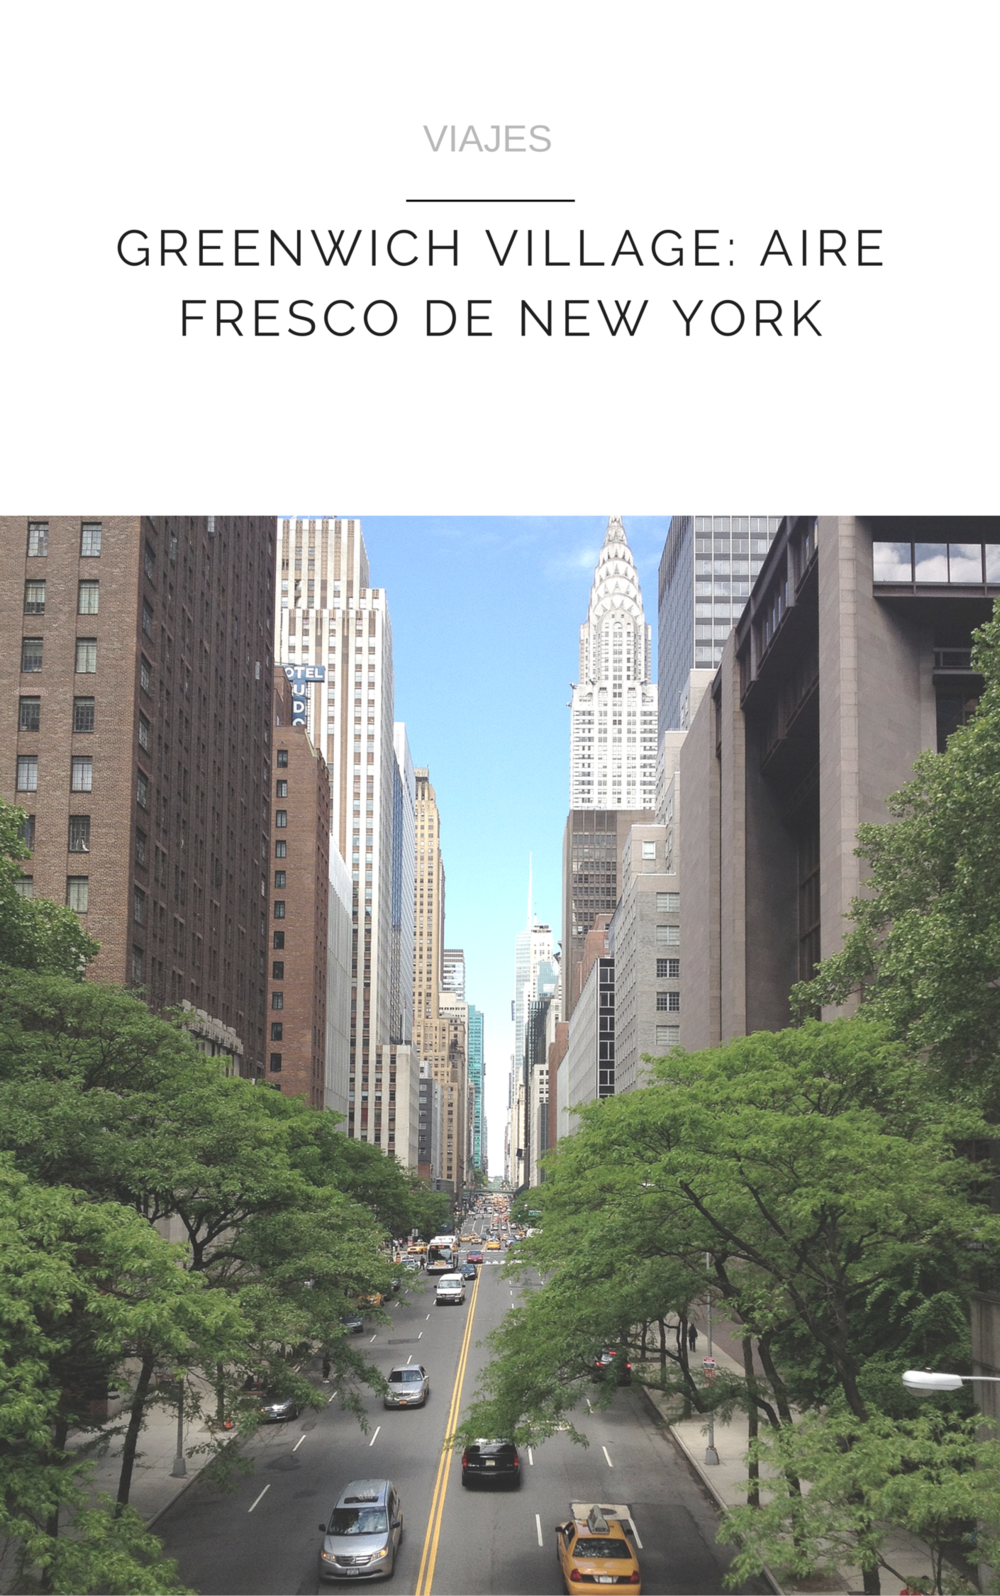 GREENWICH VILLAGE: AIRE FRESCO DE NEW YORK